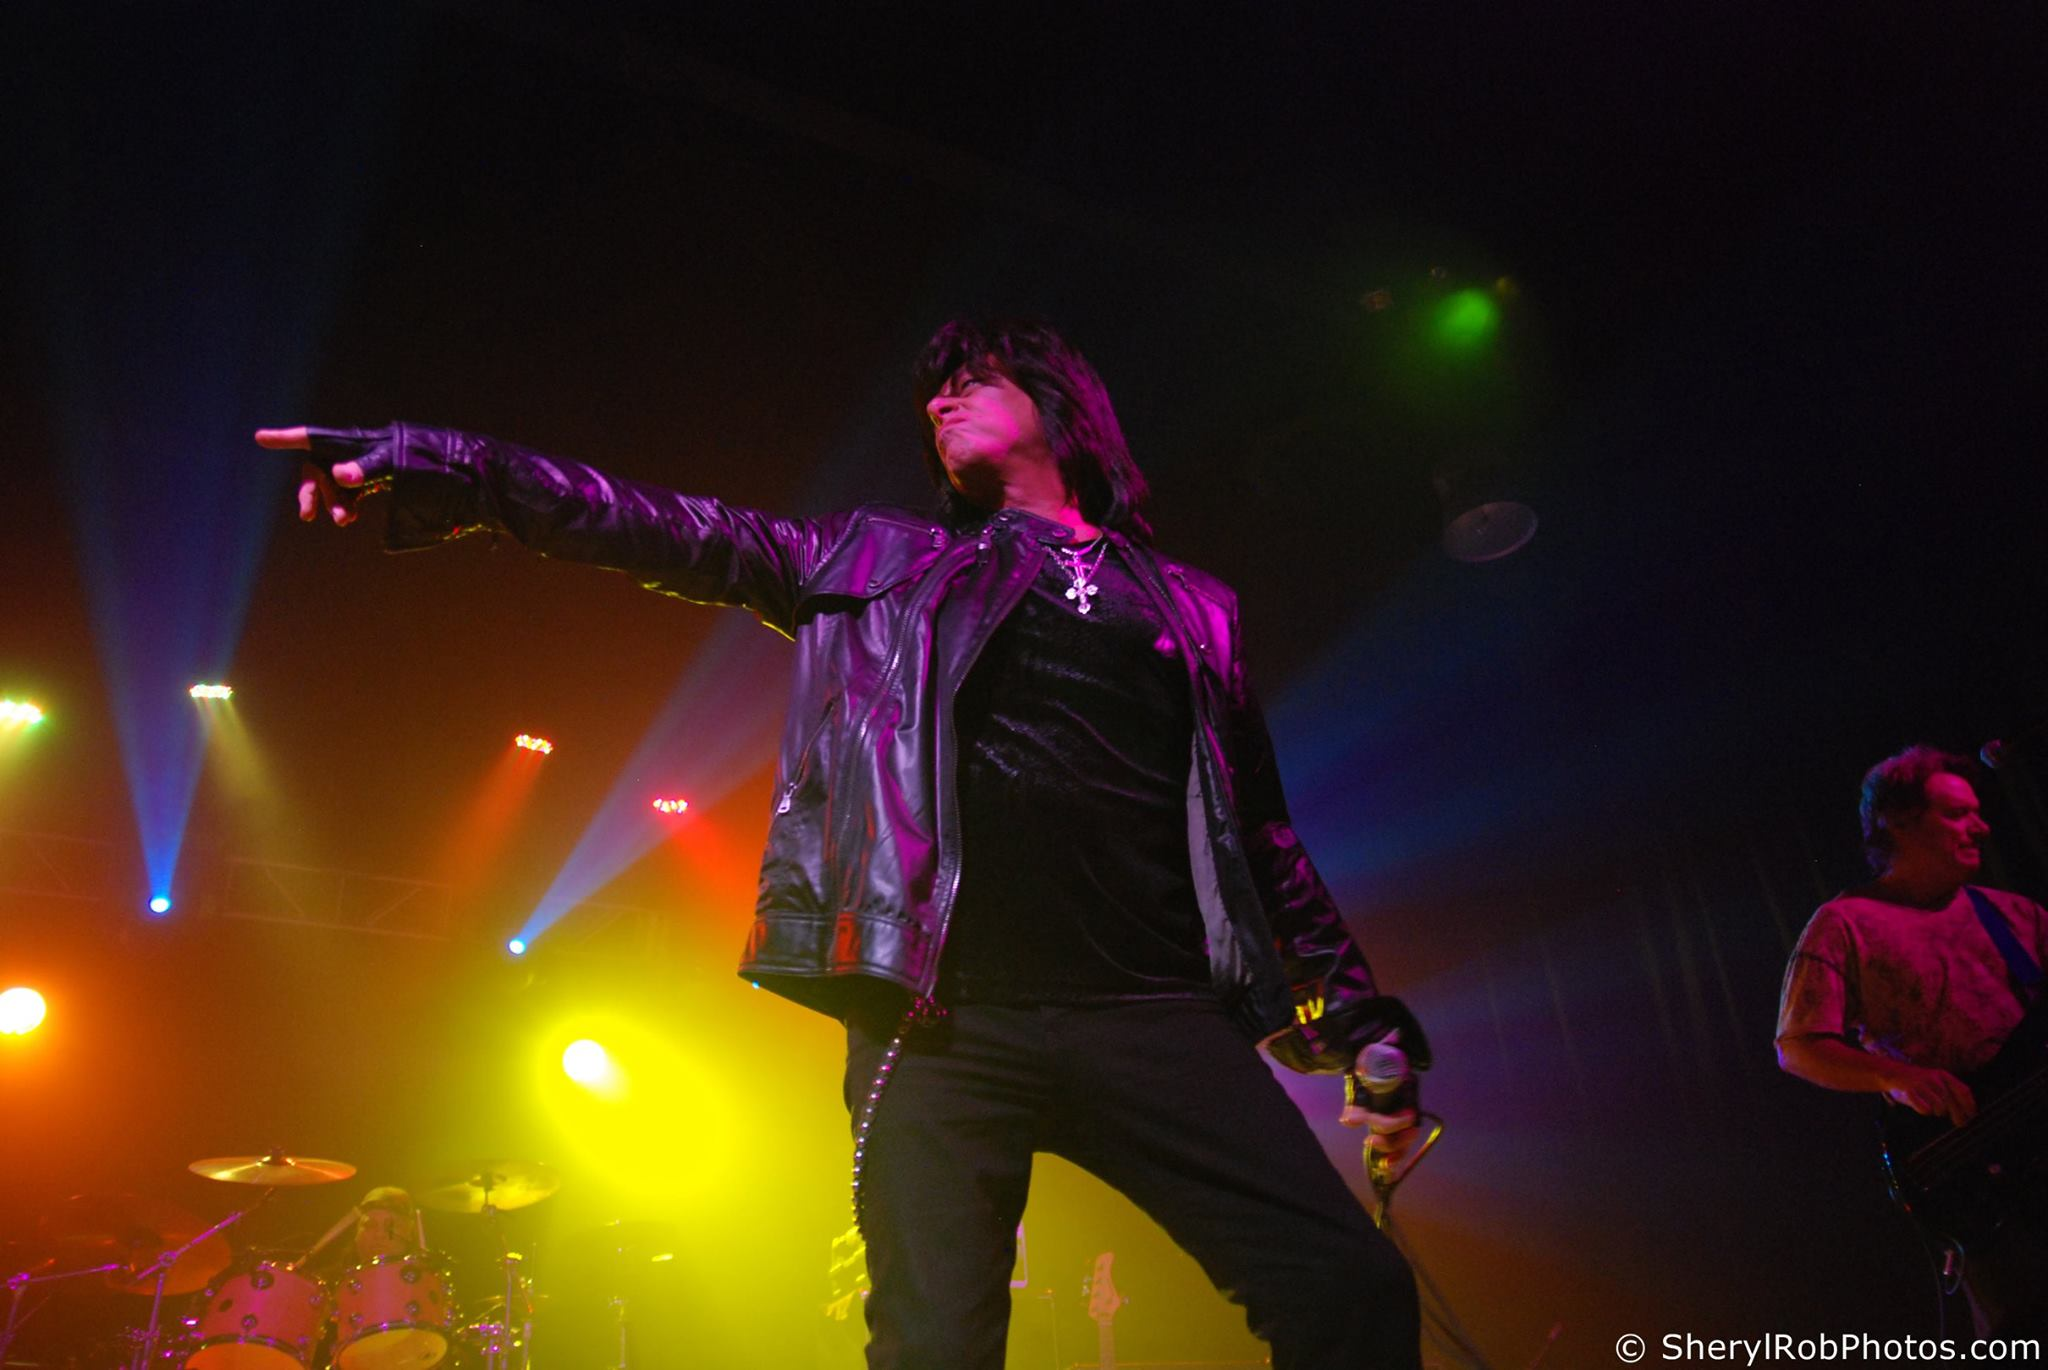 Entrevista Exclusiva: Joe Lynn Turner